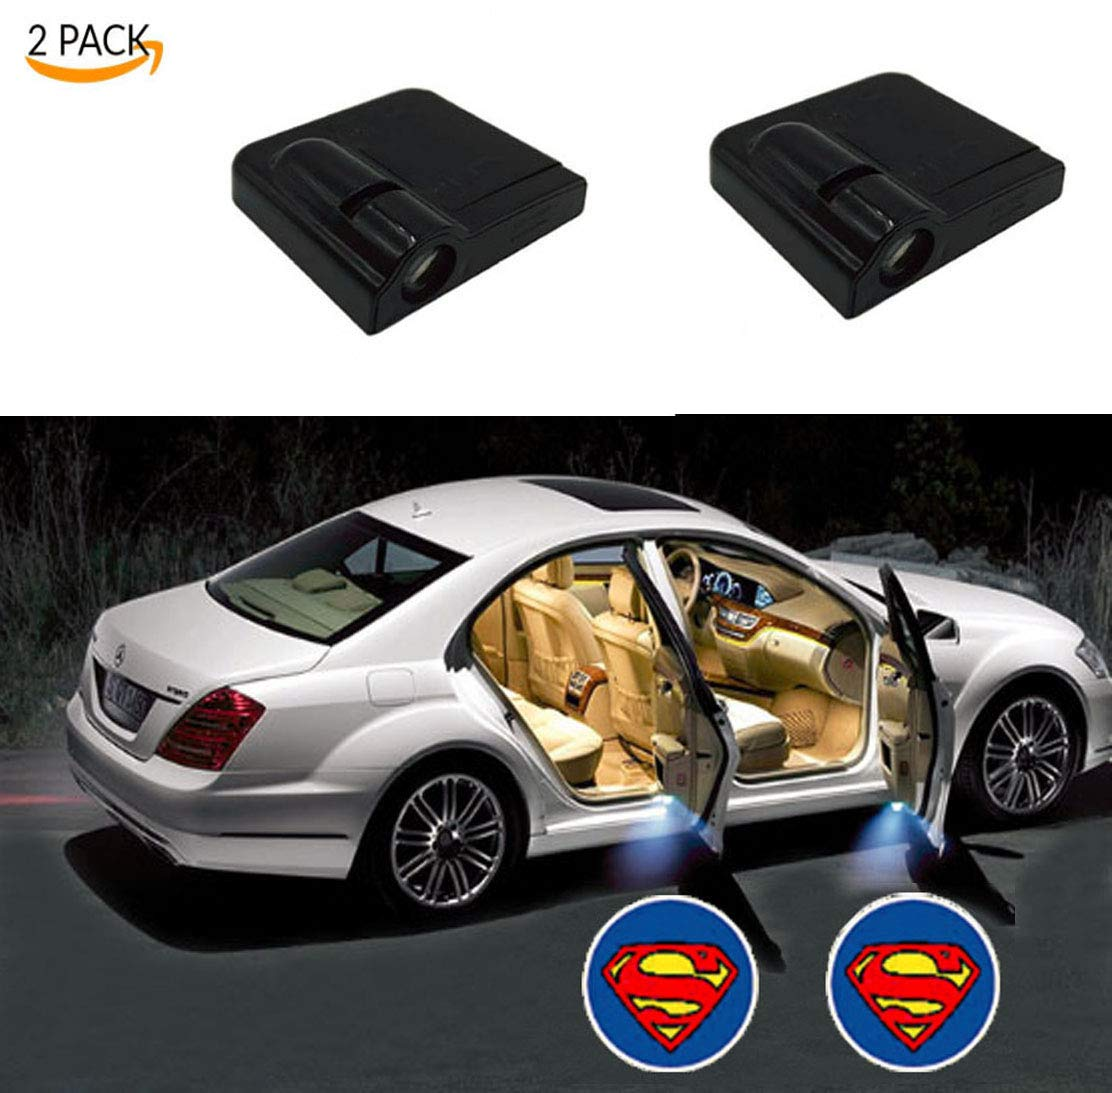 Toogod 2-Pack Spiderman Welcome Logo Wireless Battery Operated LED Car Door Light Projector Courtesy Ghost Shadow Light Magnet Sensor